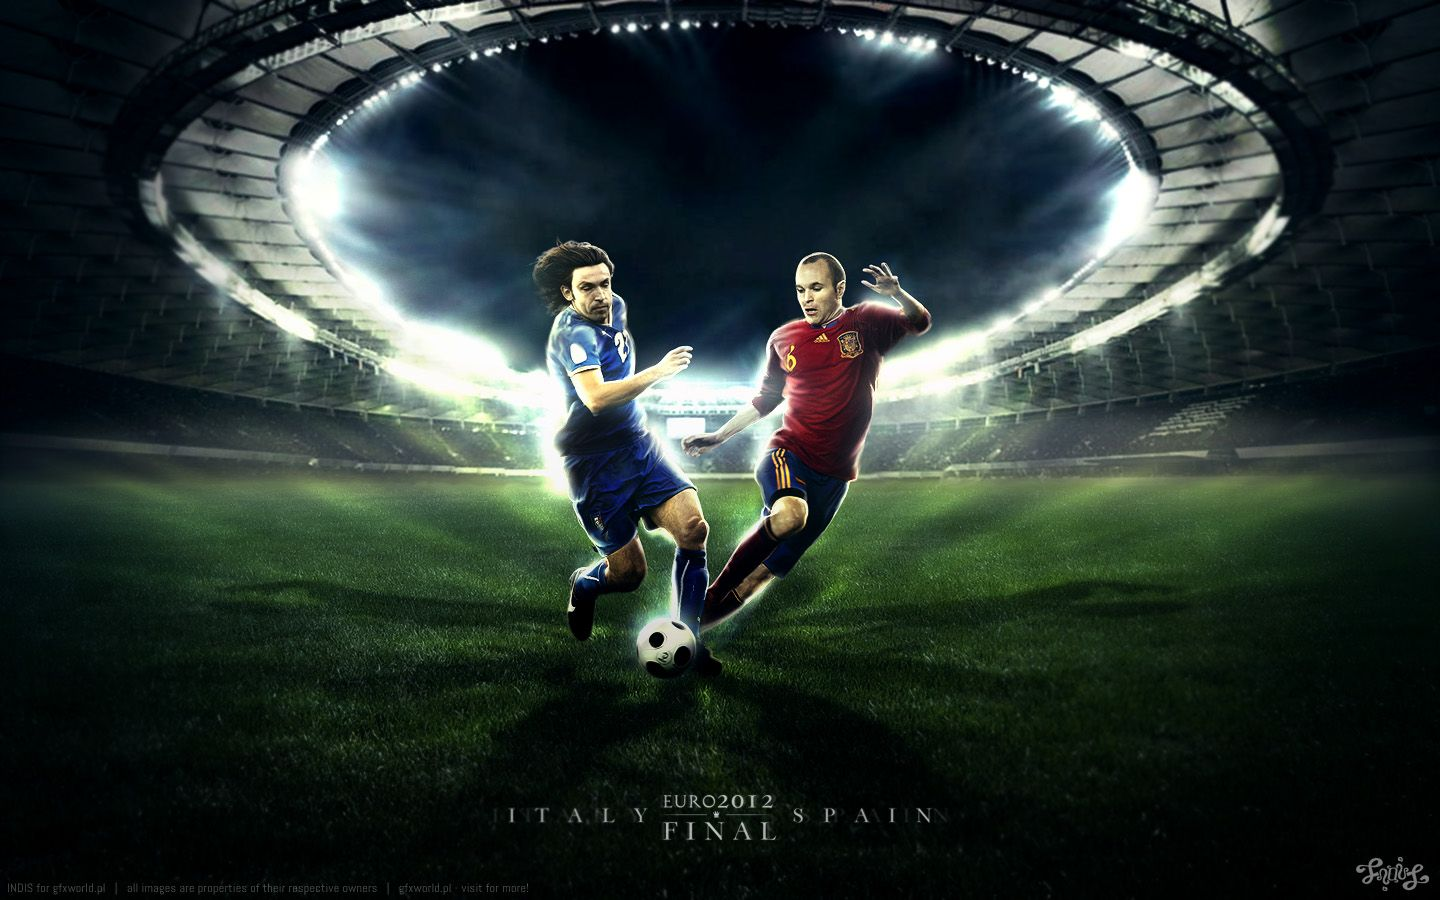 Football Wallpaper 21 Best Wallpaper Collection Football Wallpaper Sports Wallpapers Sports Pictures